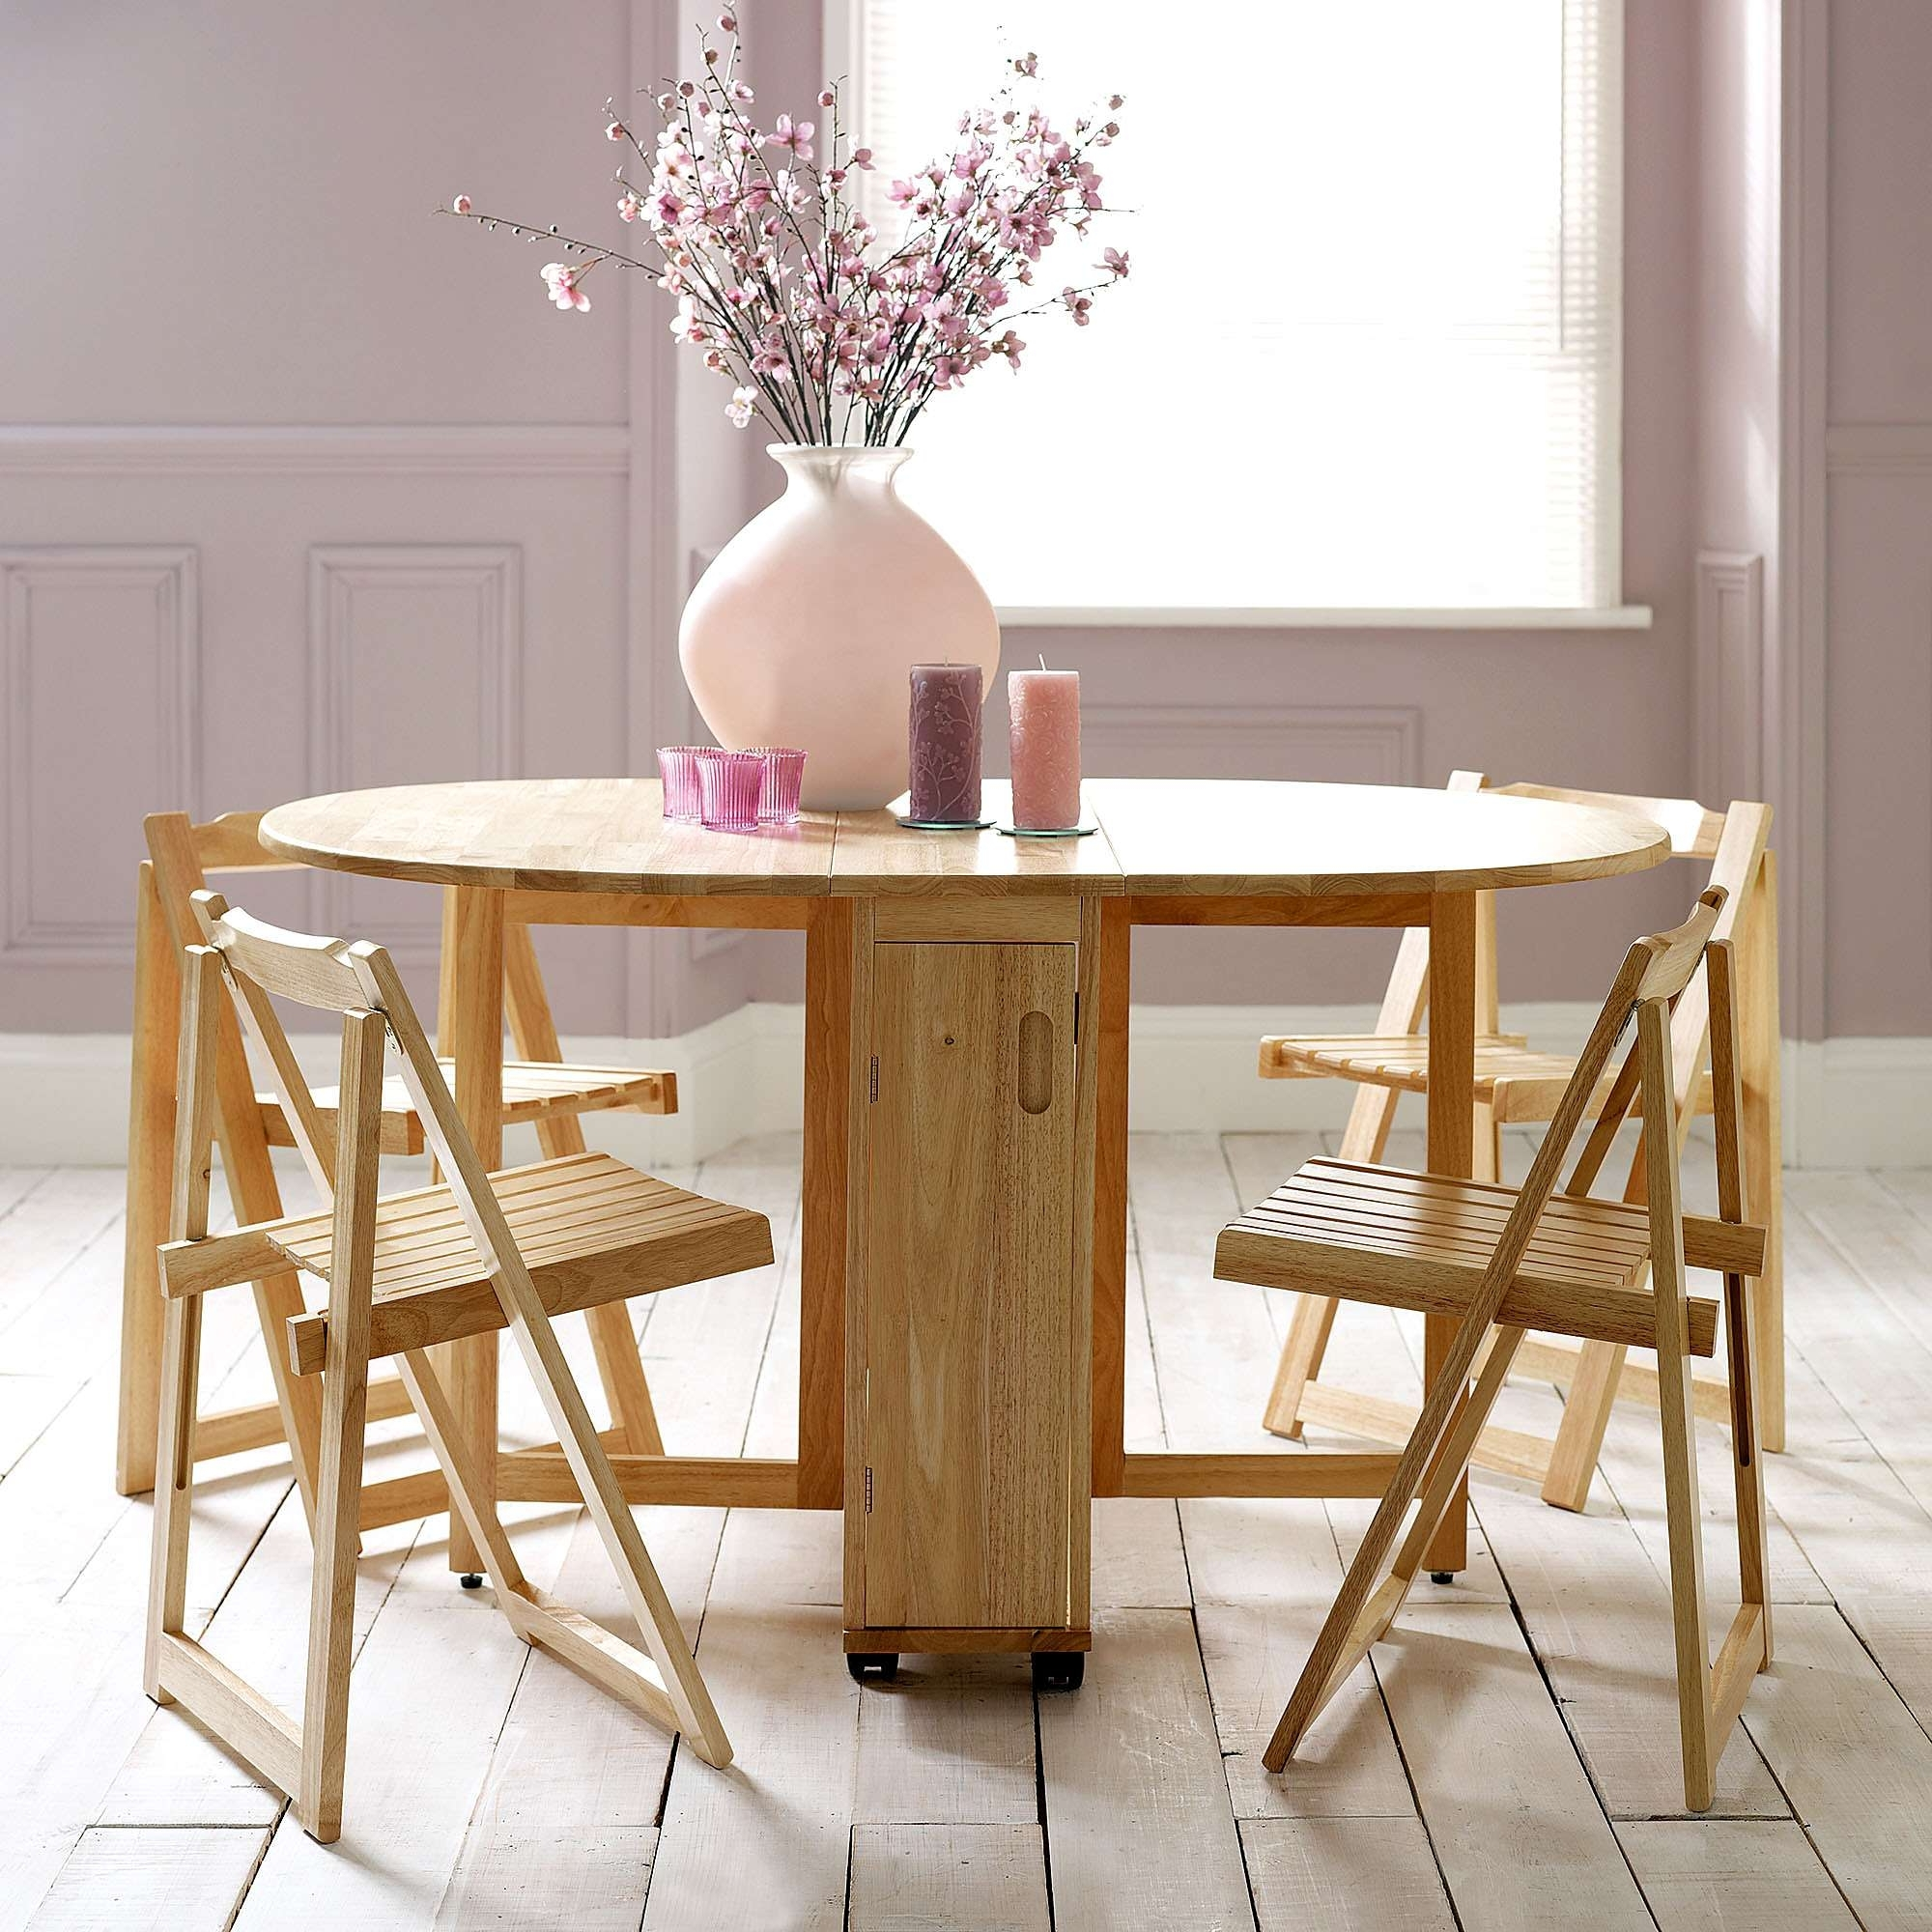 2018 Wood Folding Dining Tables With Choose A Folding Dining Table For A Small Space – Adorable Home (View 14 of 25)